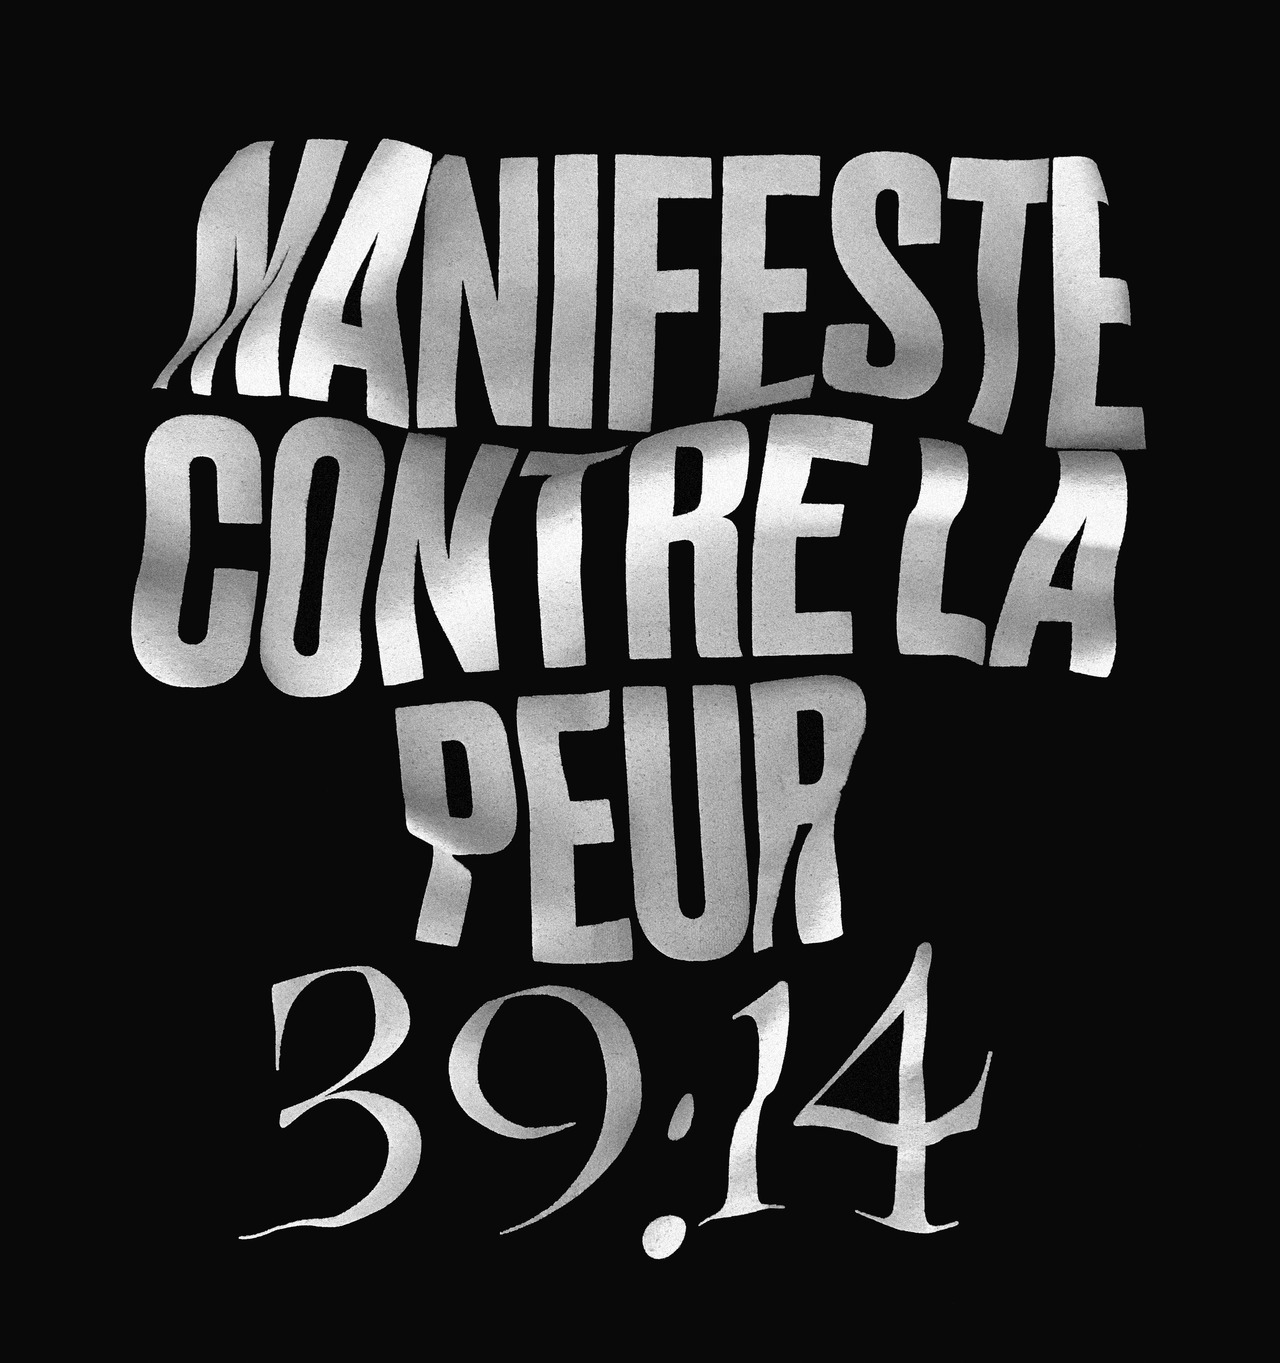 T-shirt for the Manifeste contre la peur tour by Violett Pi. Designed by Julien Hébert and David Beauchemin, 2017.